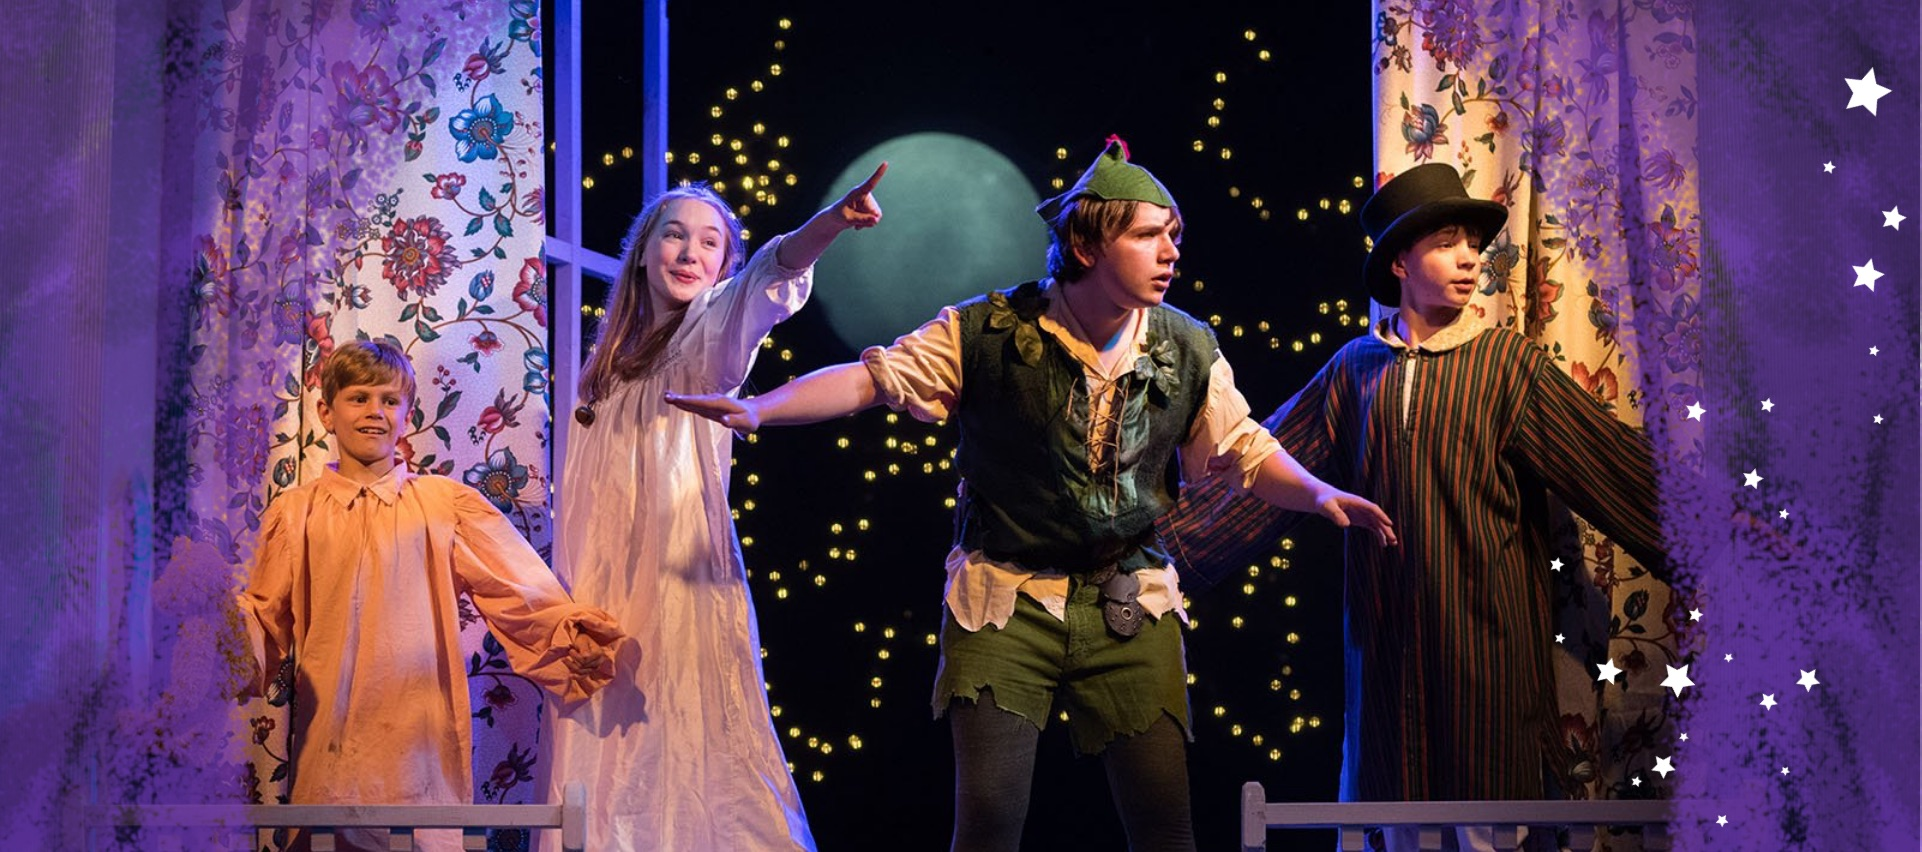 "Actors in the play ""Peter Pan"" during a performance"